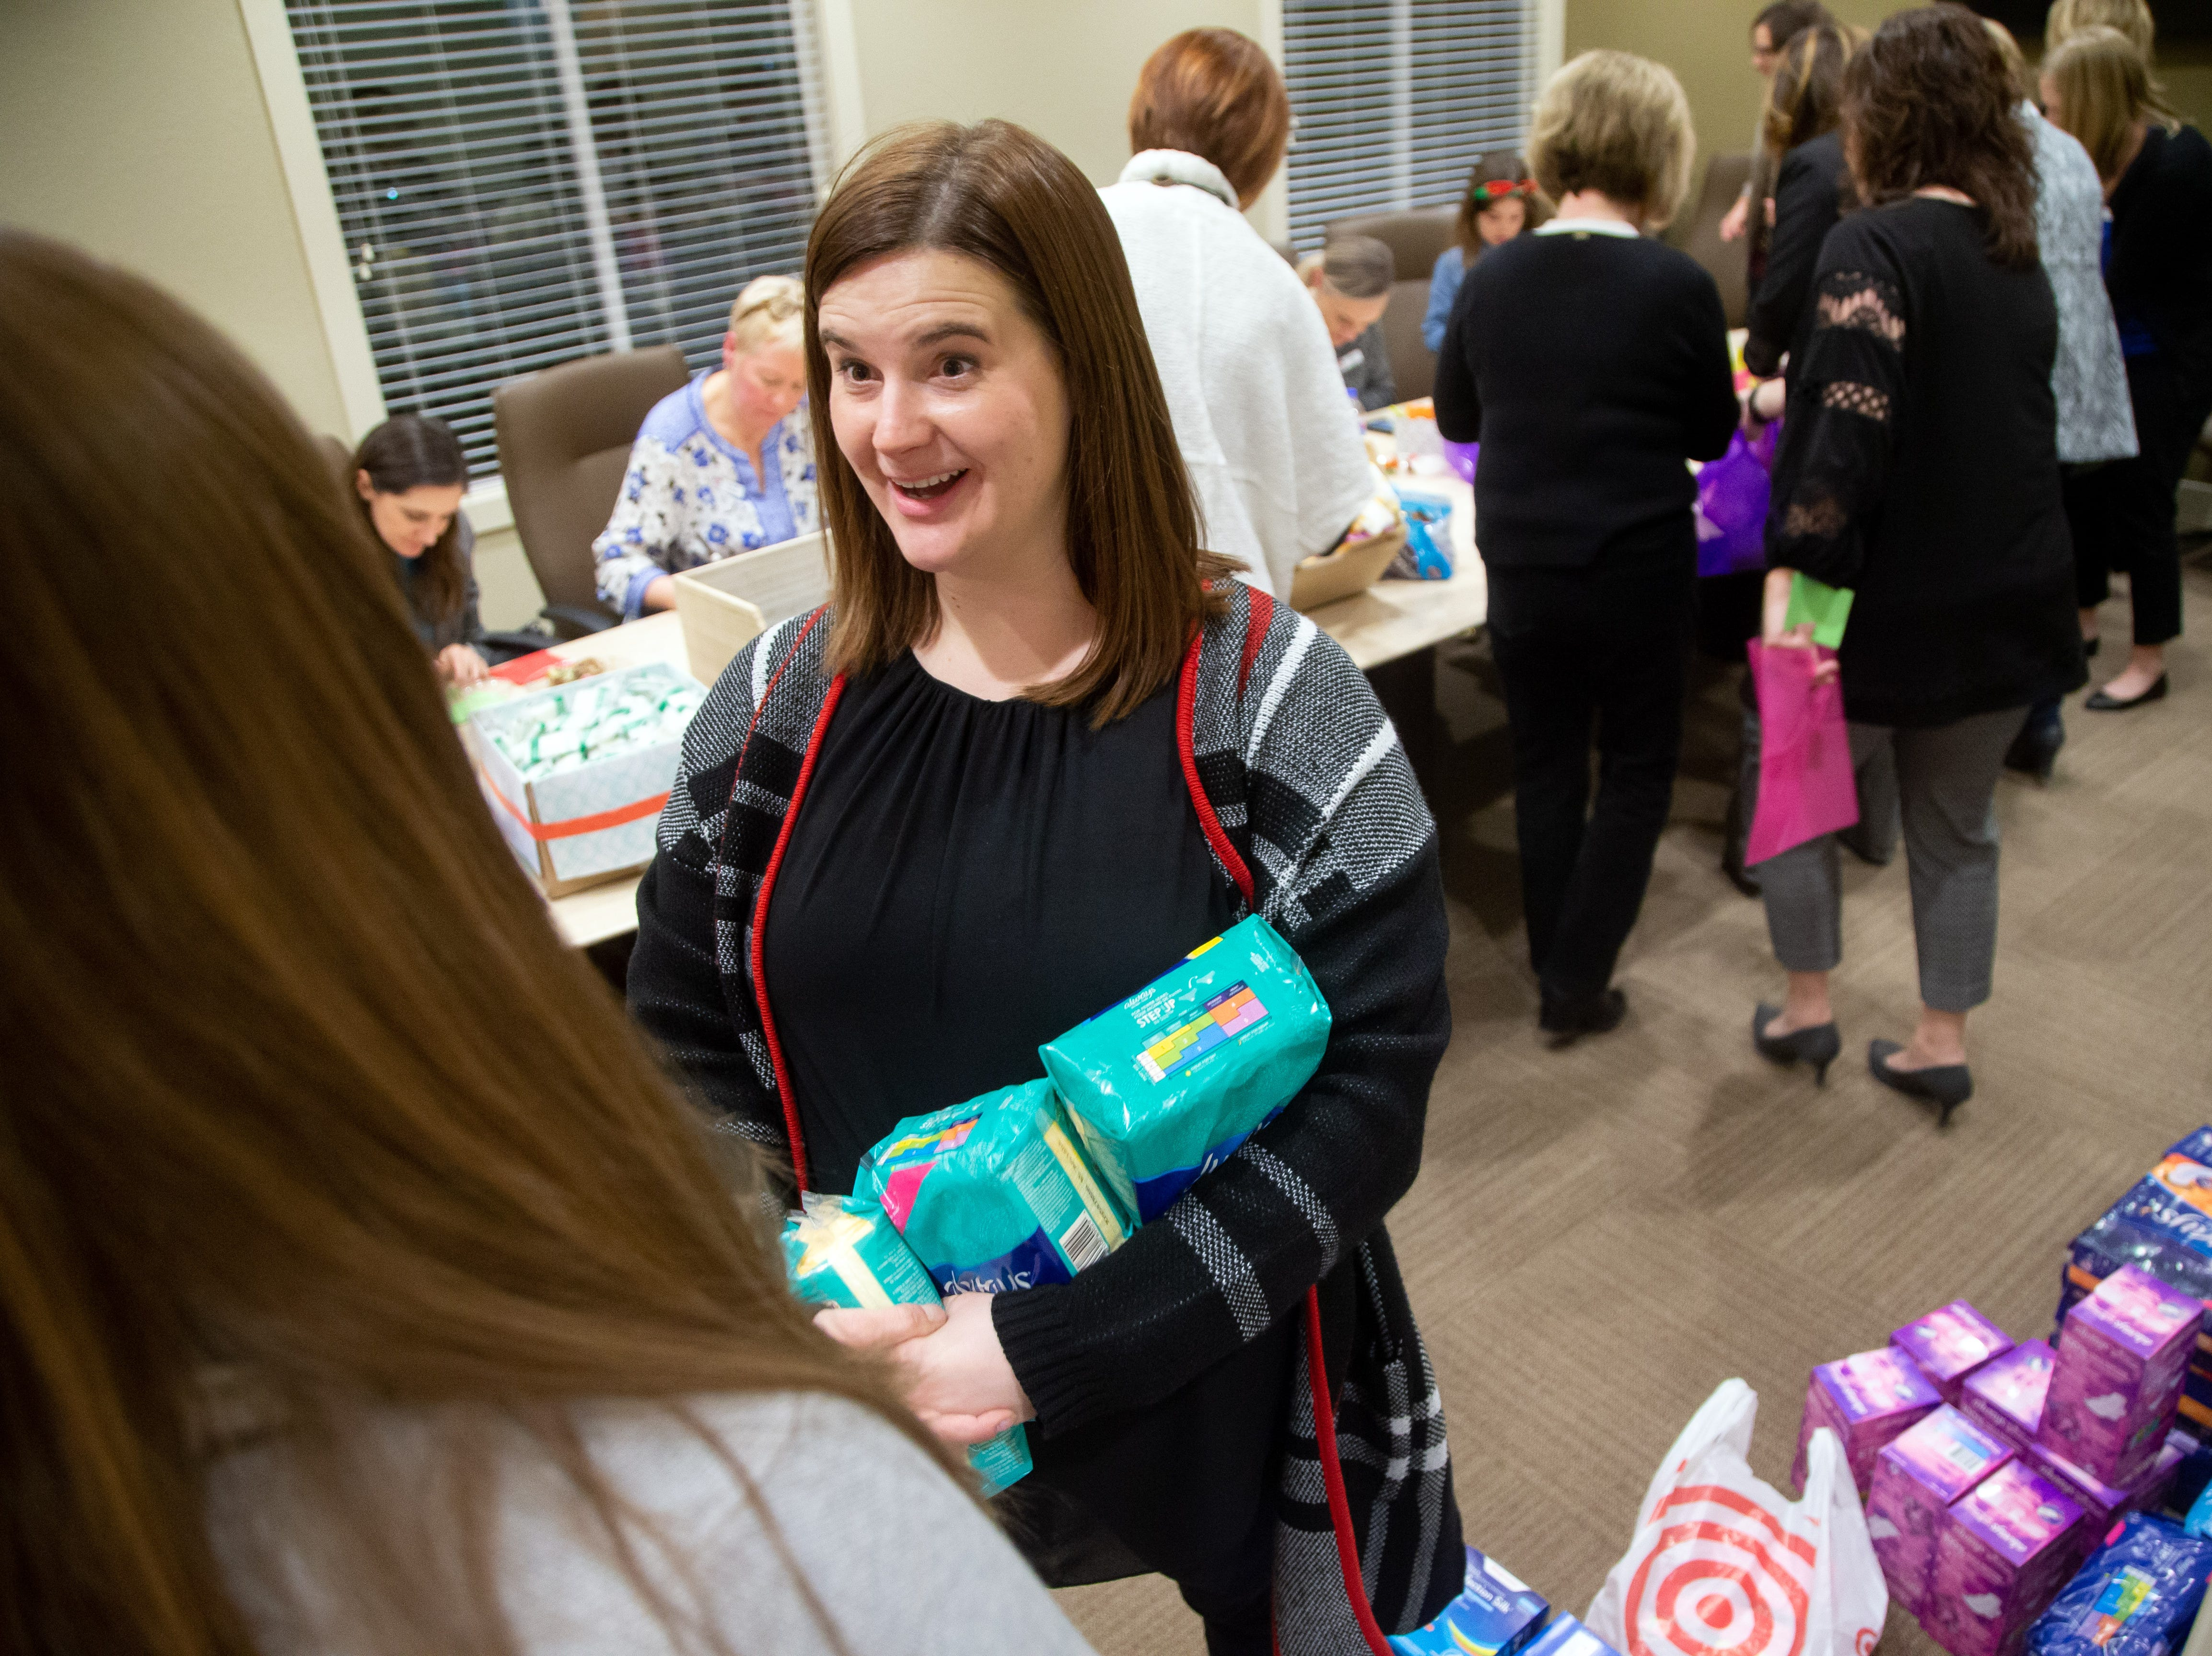 People to Watch: Johnston mother, daughter provide menstrual products to women in need